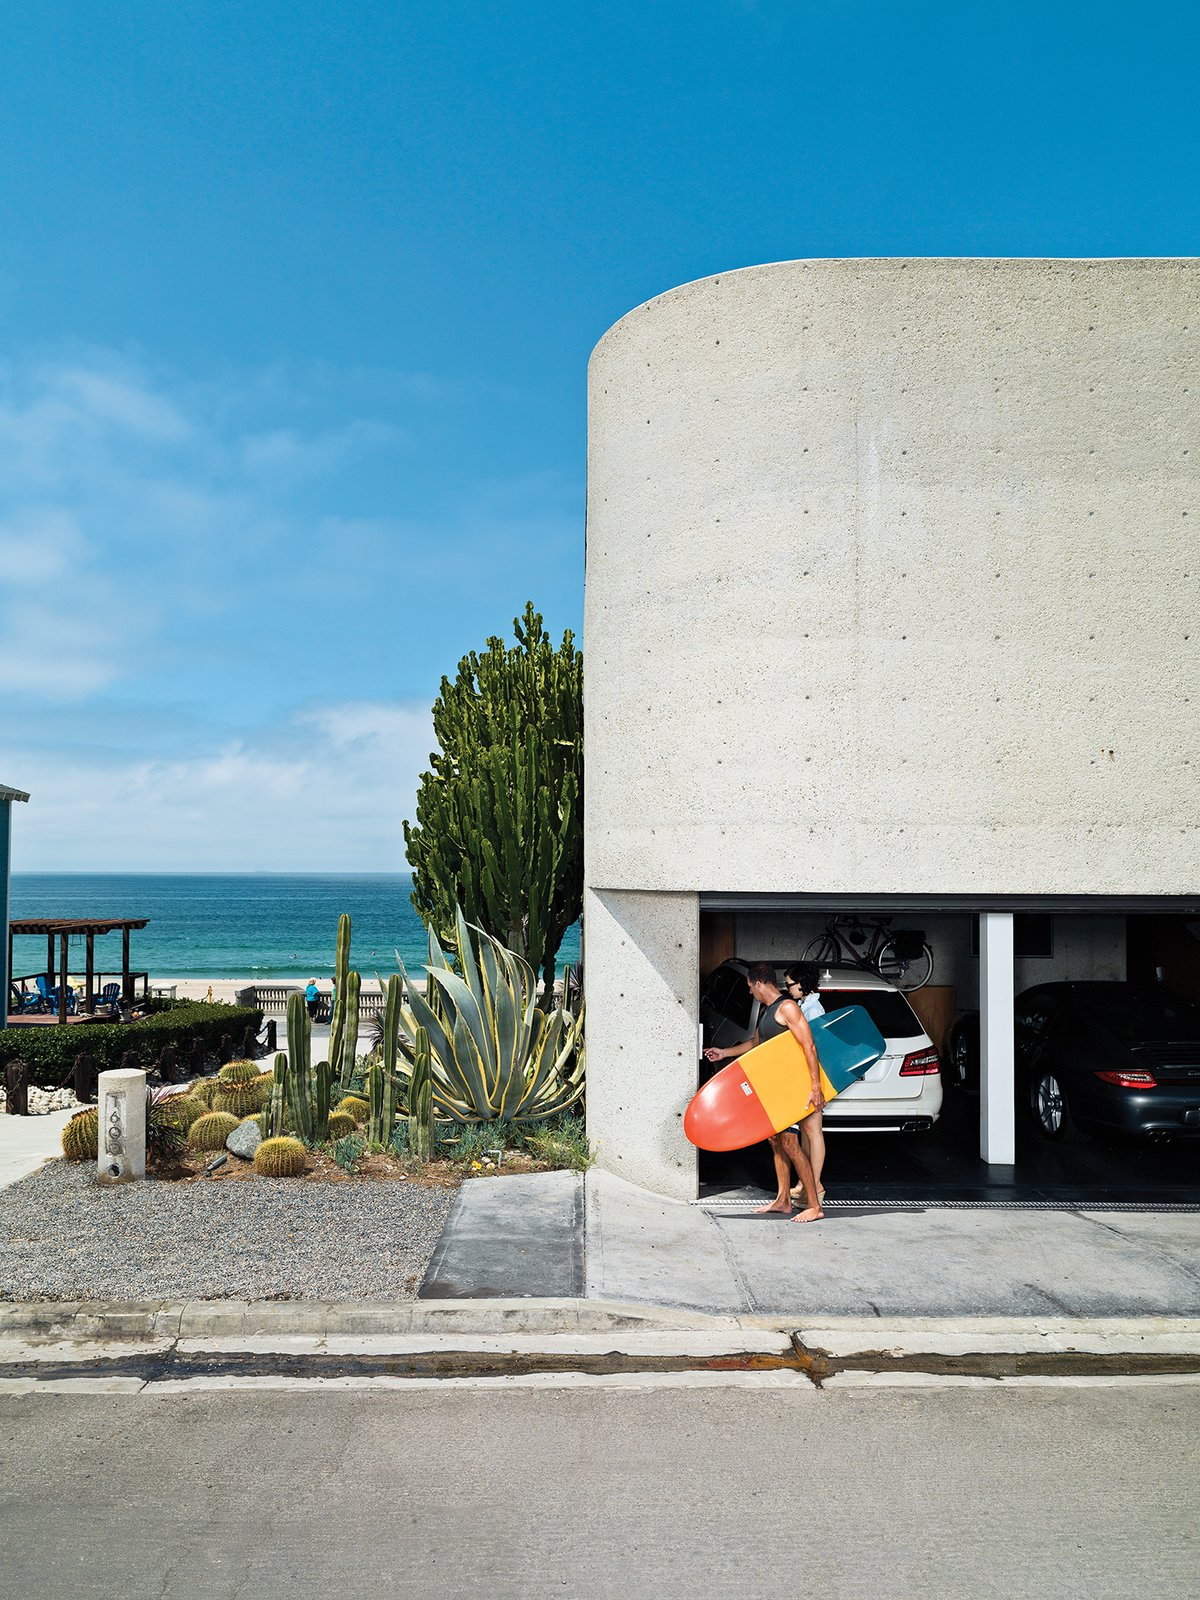 #beach #beachhouse #manhattanbeach #streetside #concrete #concretehouse #raykappe #1980s #succulence #surfing   Photo 1 of 1 in Browse Dwell Homes & Stories from Beach